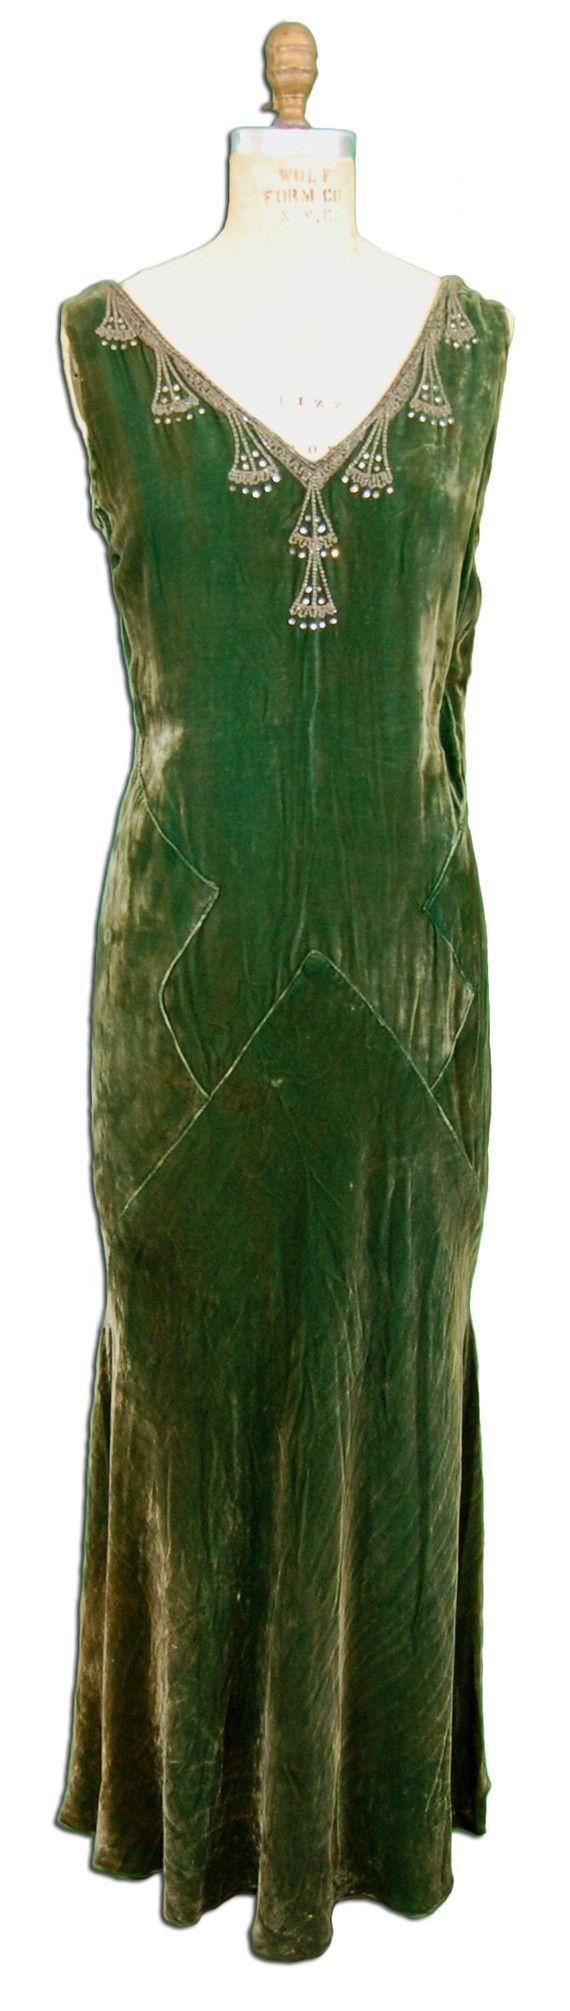 Gorgeous green silk velvet evening gown, circa late 1920's or early 1930's.